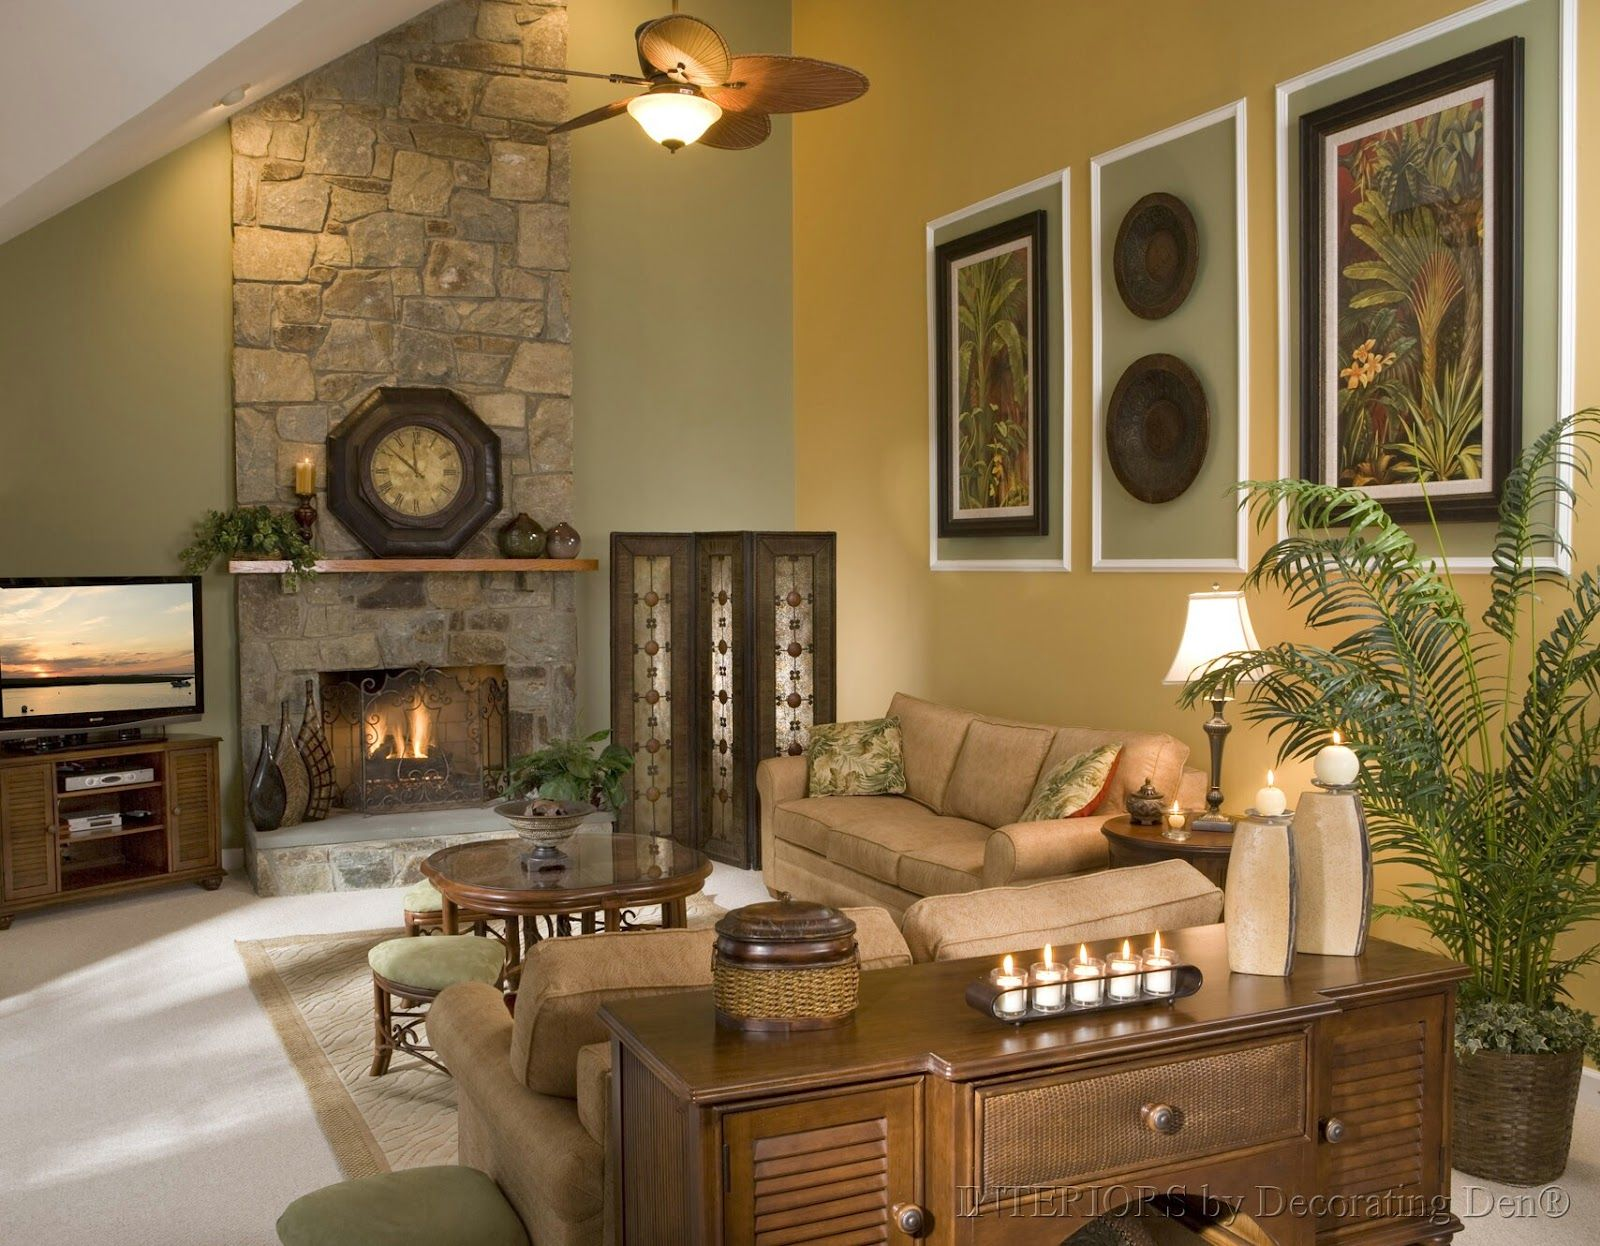 How To Decorate A Family Room Decorating A Small Split Level Home With Vaulted Ceiling  How To